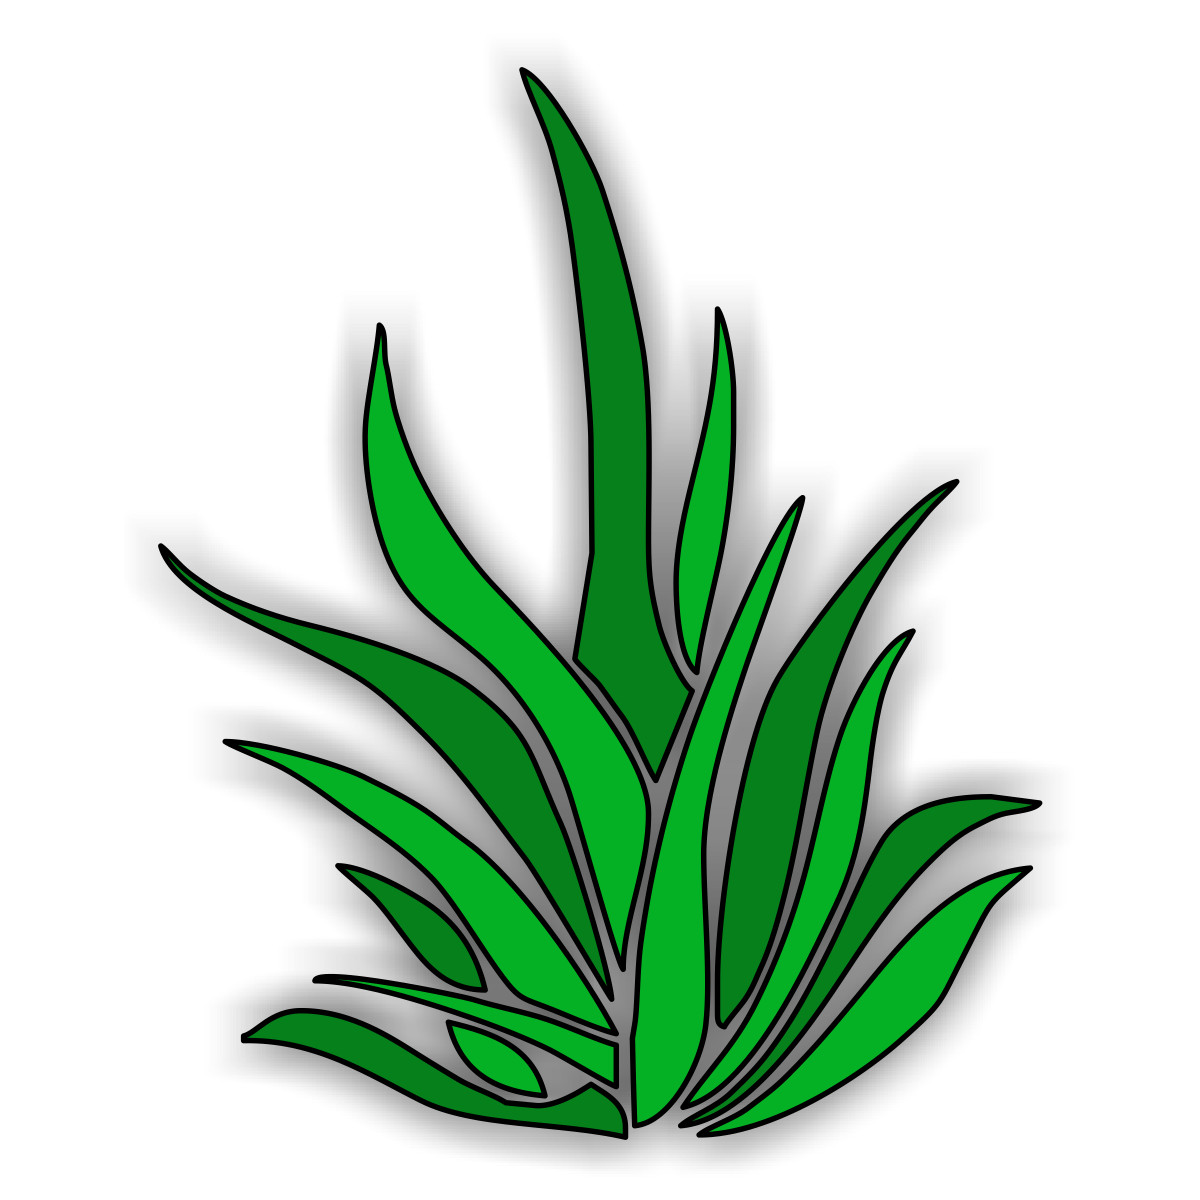 Seaweed clipart seagrass #6